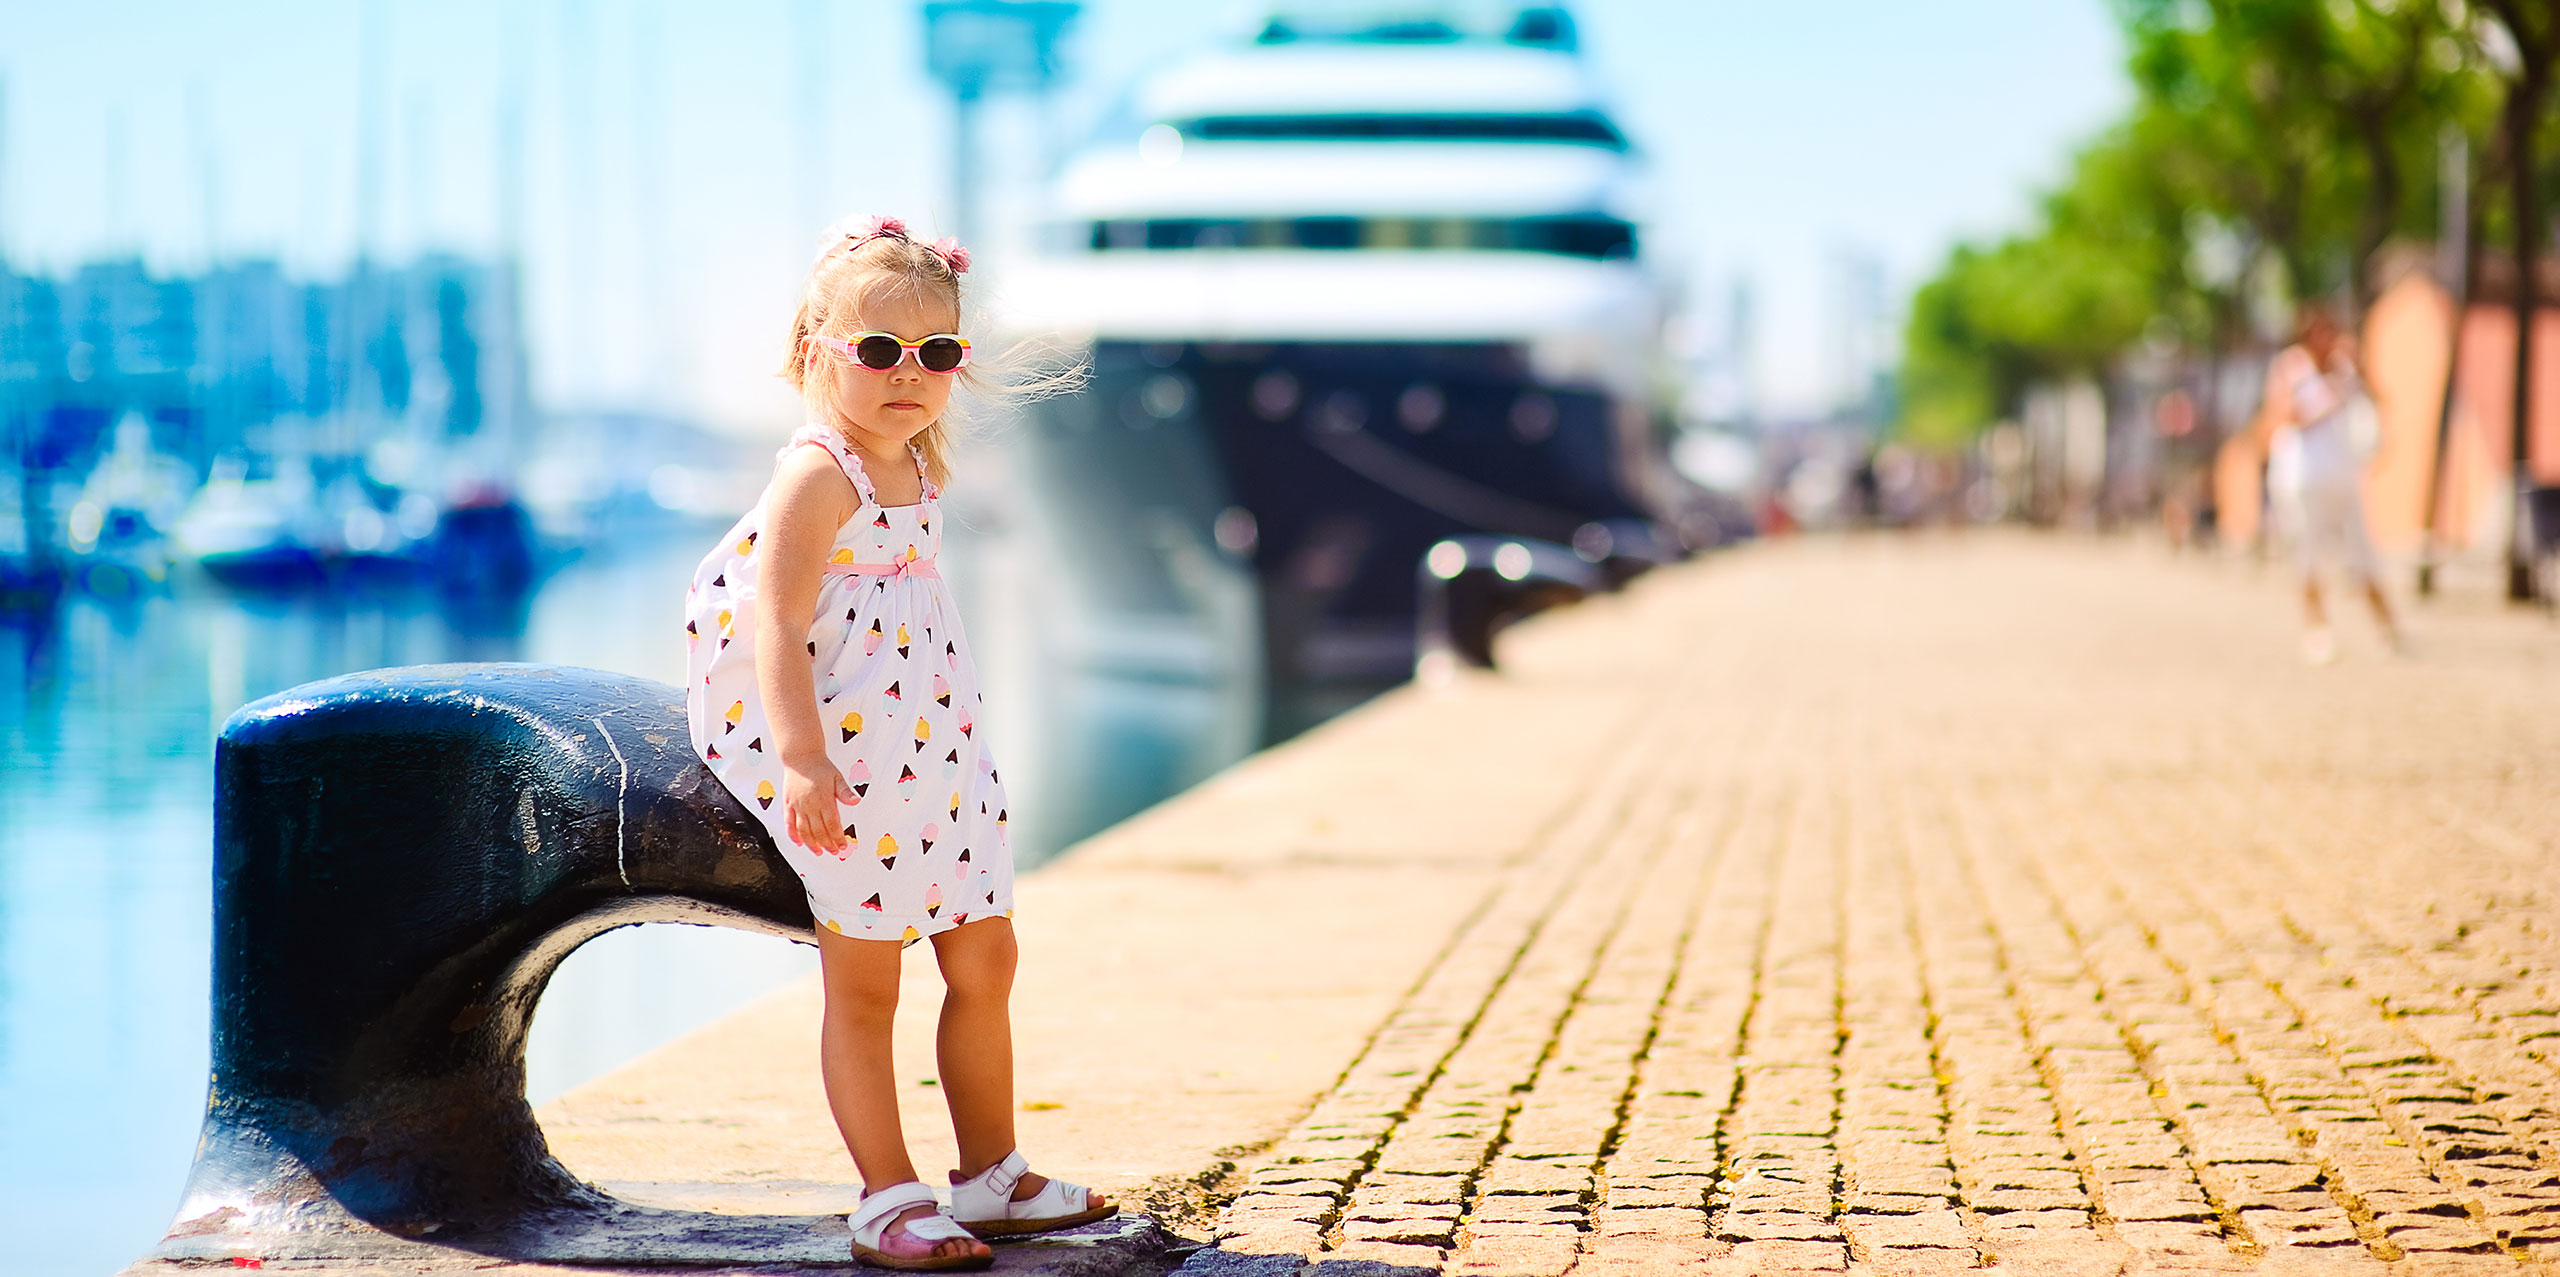 Little Girl in Cruise Port; Courtesy of Natalia Kirichenko/Shutterstock.com